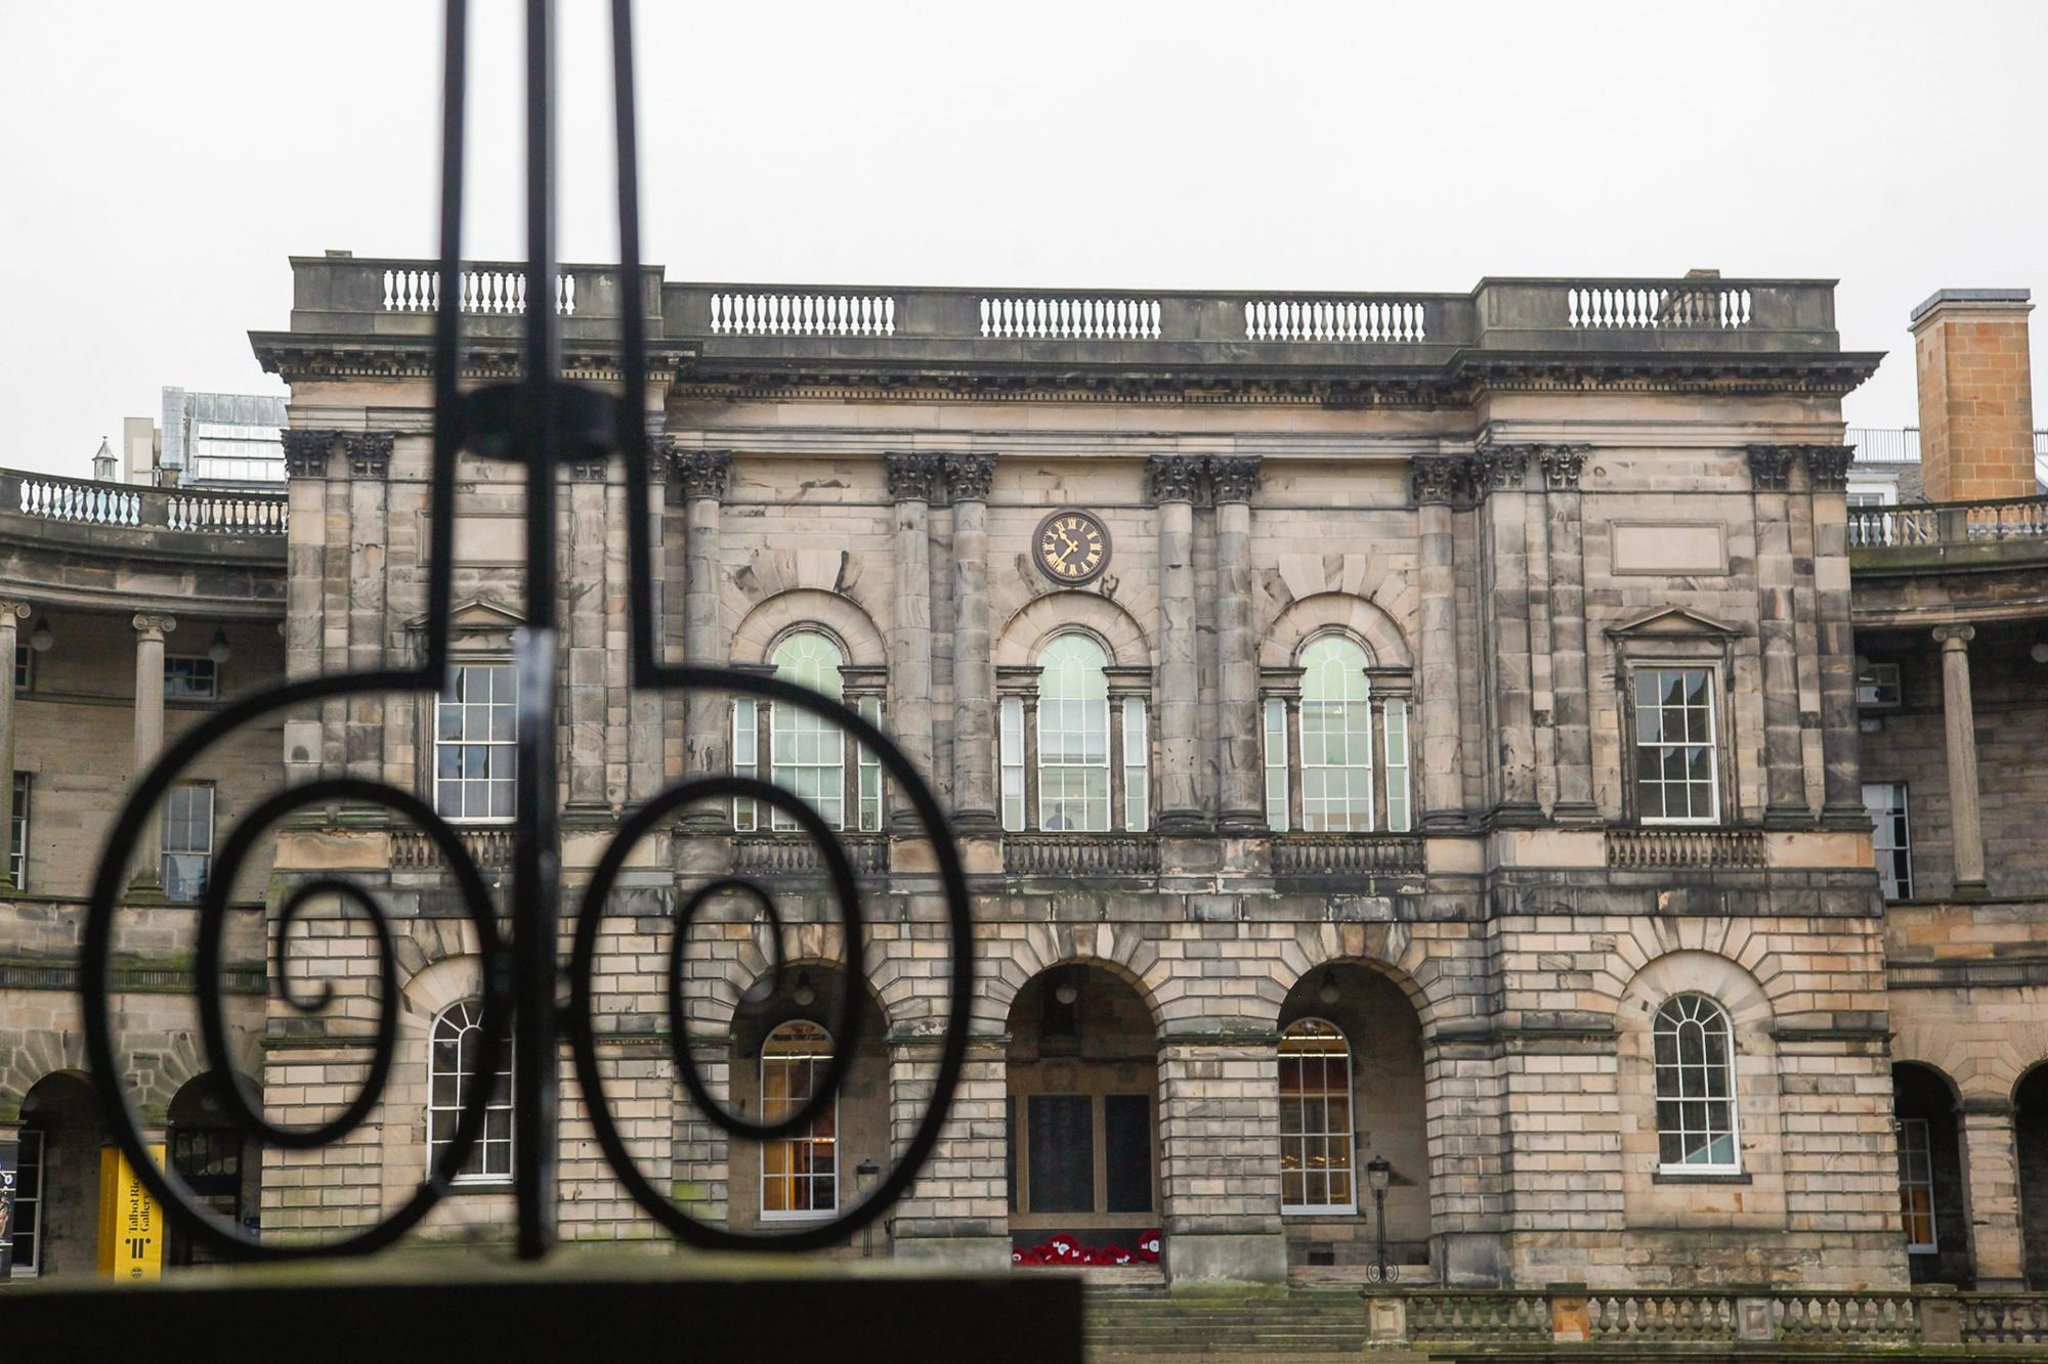 Edinburgh University article on transphobia sparks protest by women's rights group